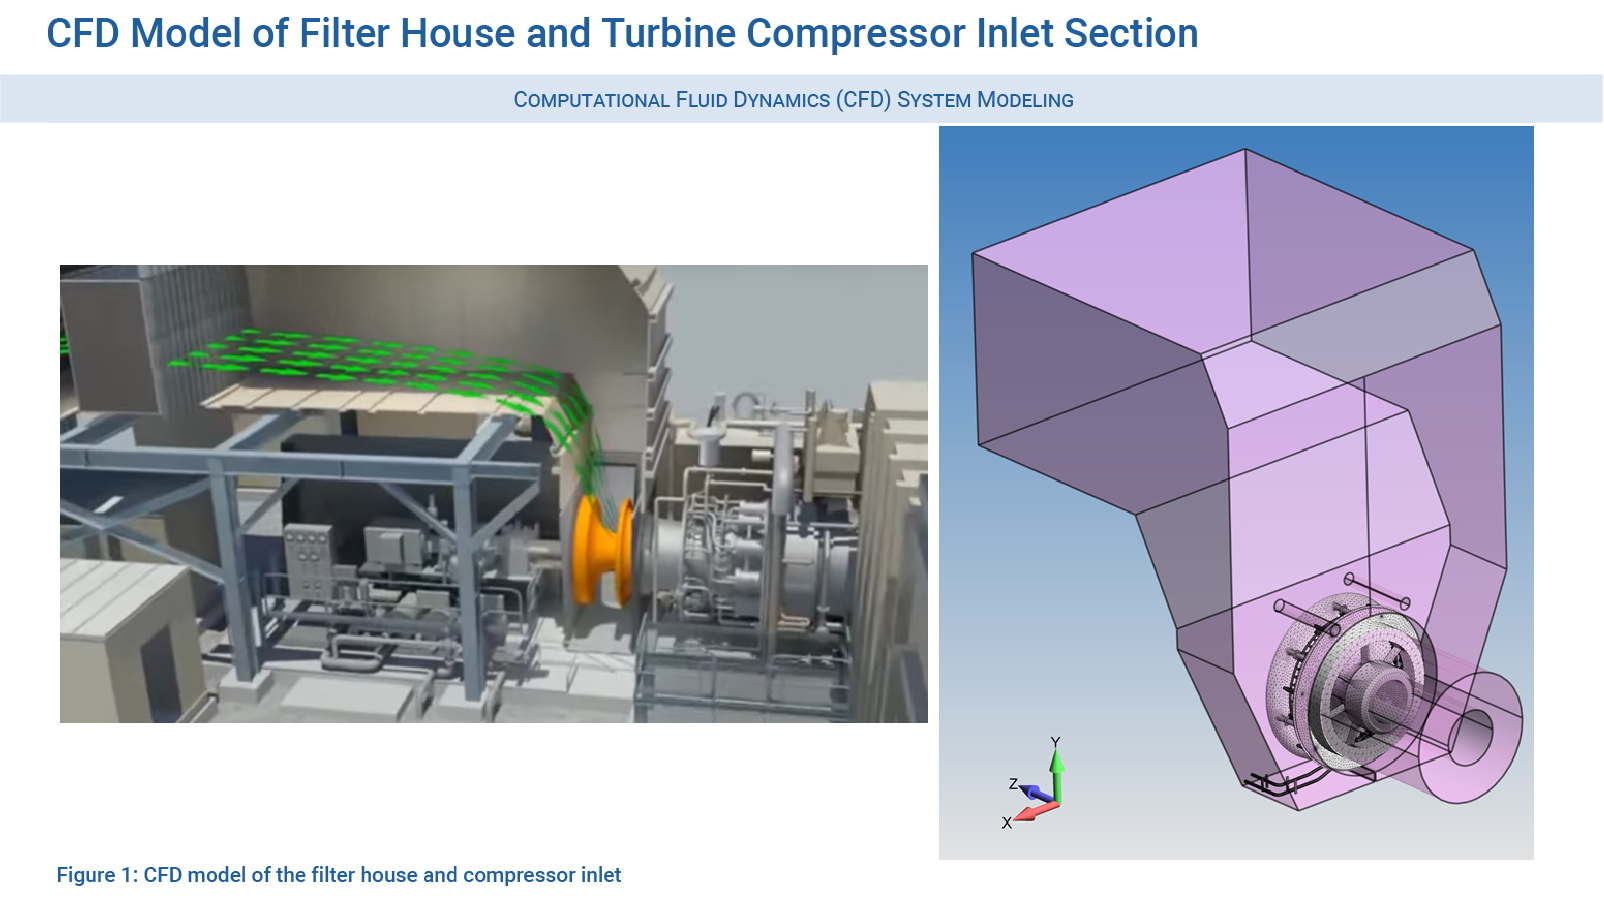 CFD Model of Filter House and Turbine Compressor Inlet Section - Courtesy of Predictive Engineering CFD Consulting Services